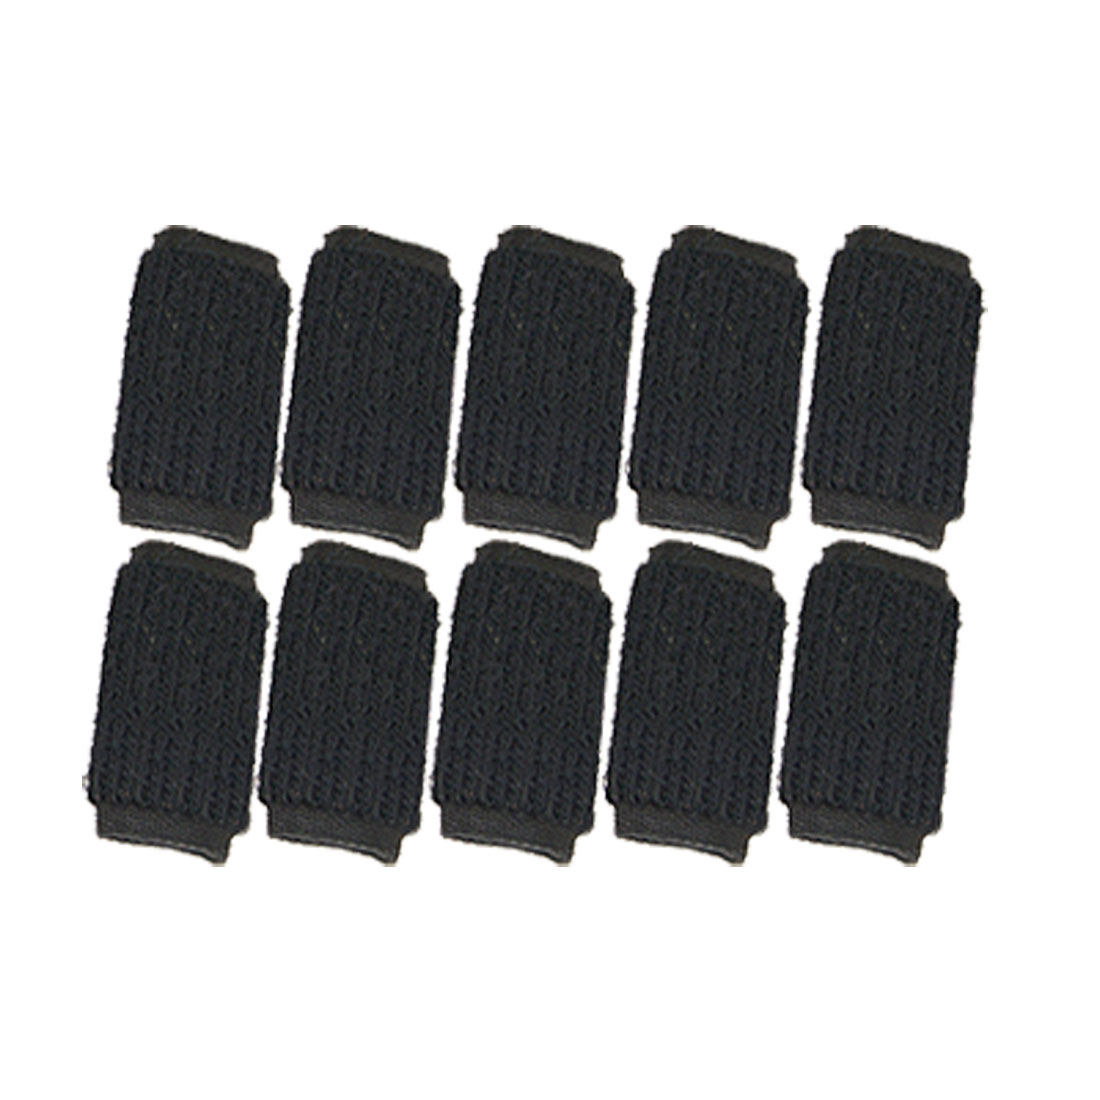 Unique Bargains 10Pcs Black Arthritis Compression Finger Sleeves Protector for Basketball Volleyball